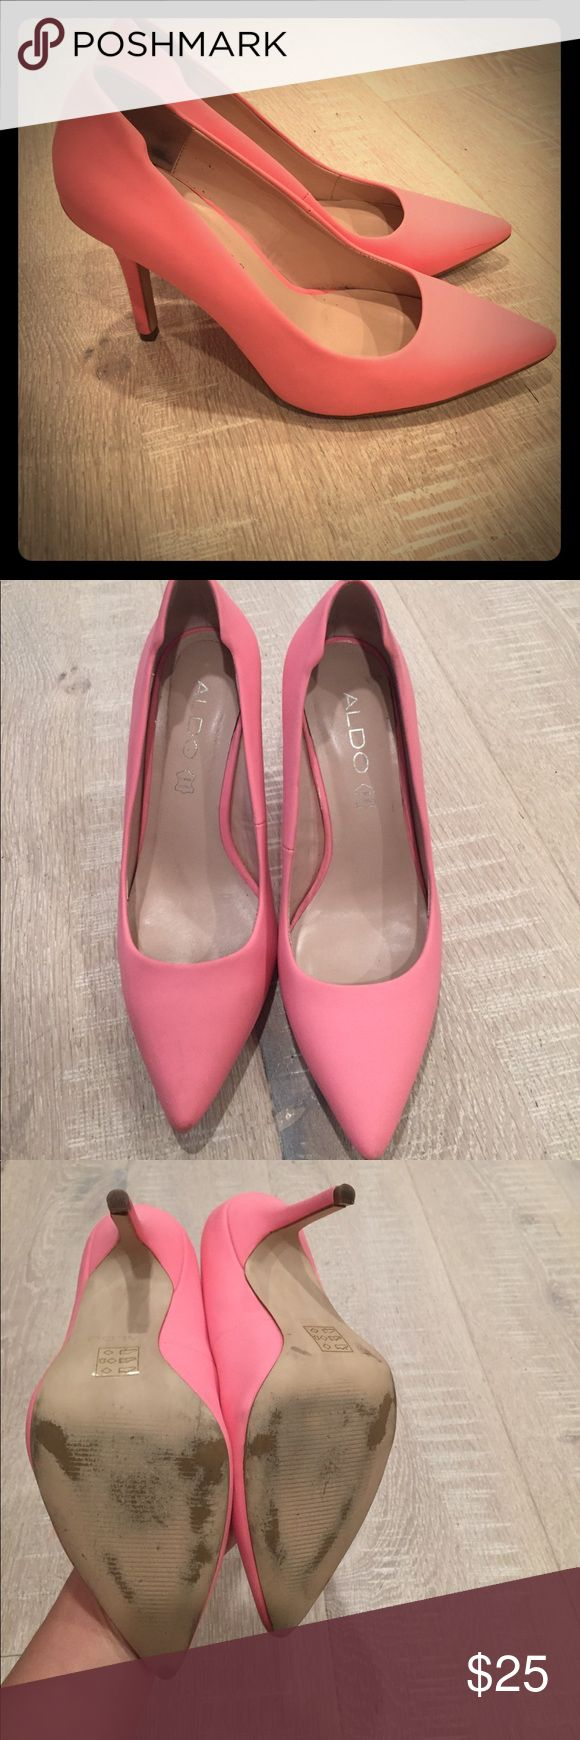 Pink matte Aldo heels Super cute pink matte Aldo heels! Only worn a few times, I have arthritis in my foot so I have to sell all my heels 😫 there is some scuffing as noted in pictures, but they're still in really great shape! Aldo Shoes Heels